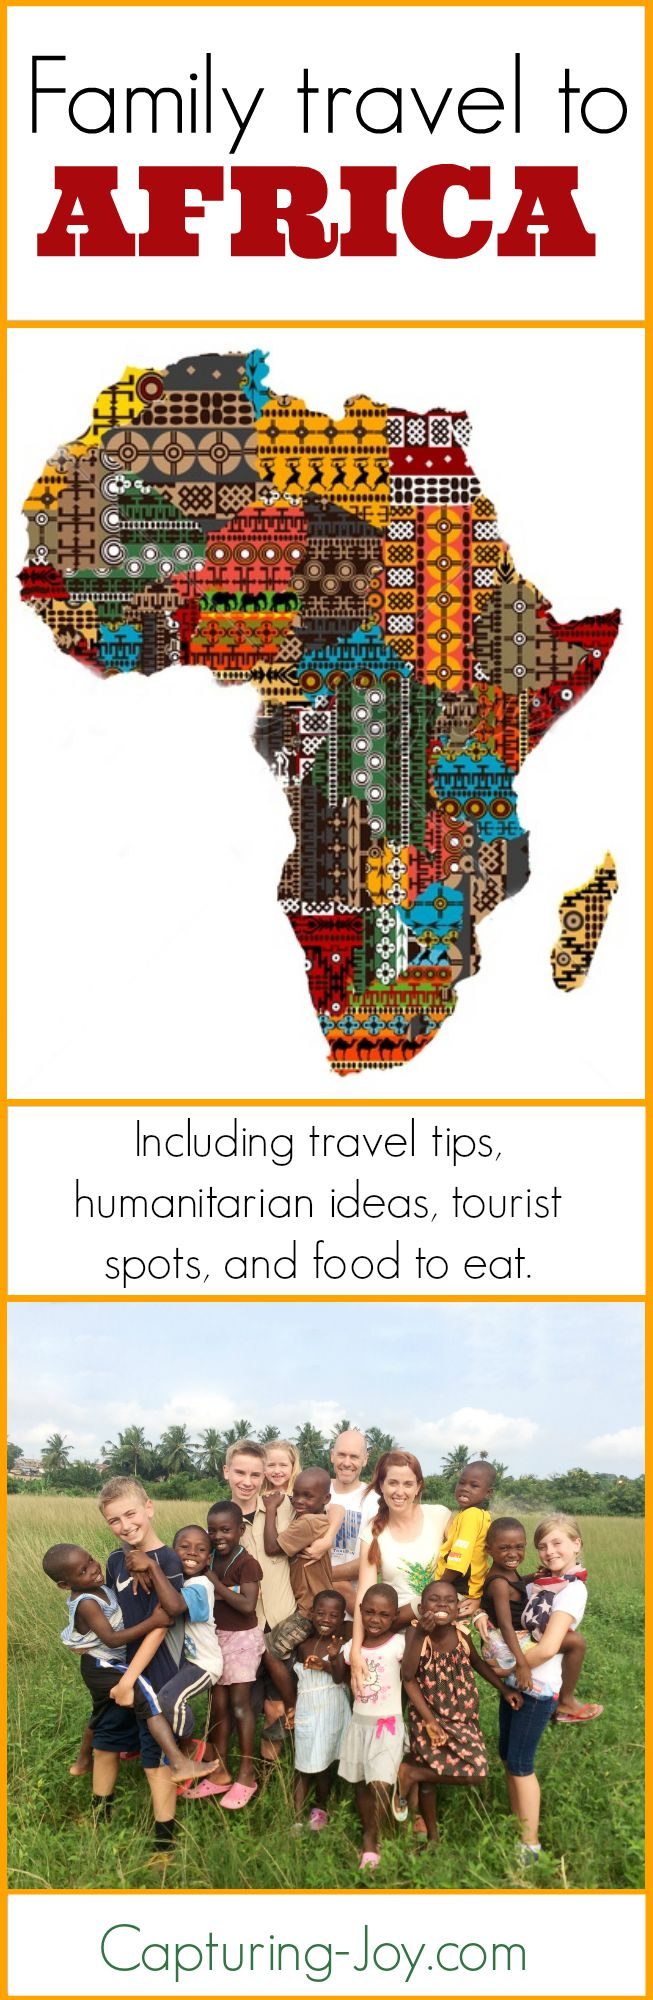 Family-travel-to-Africa-including-travel-tips-humanitarian-ideas-tourist-spots-and-food-to-eat